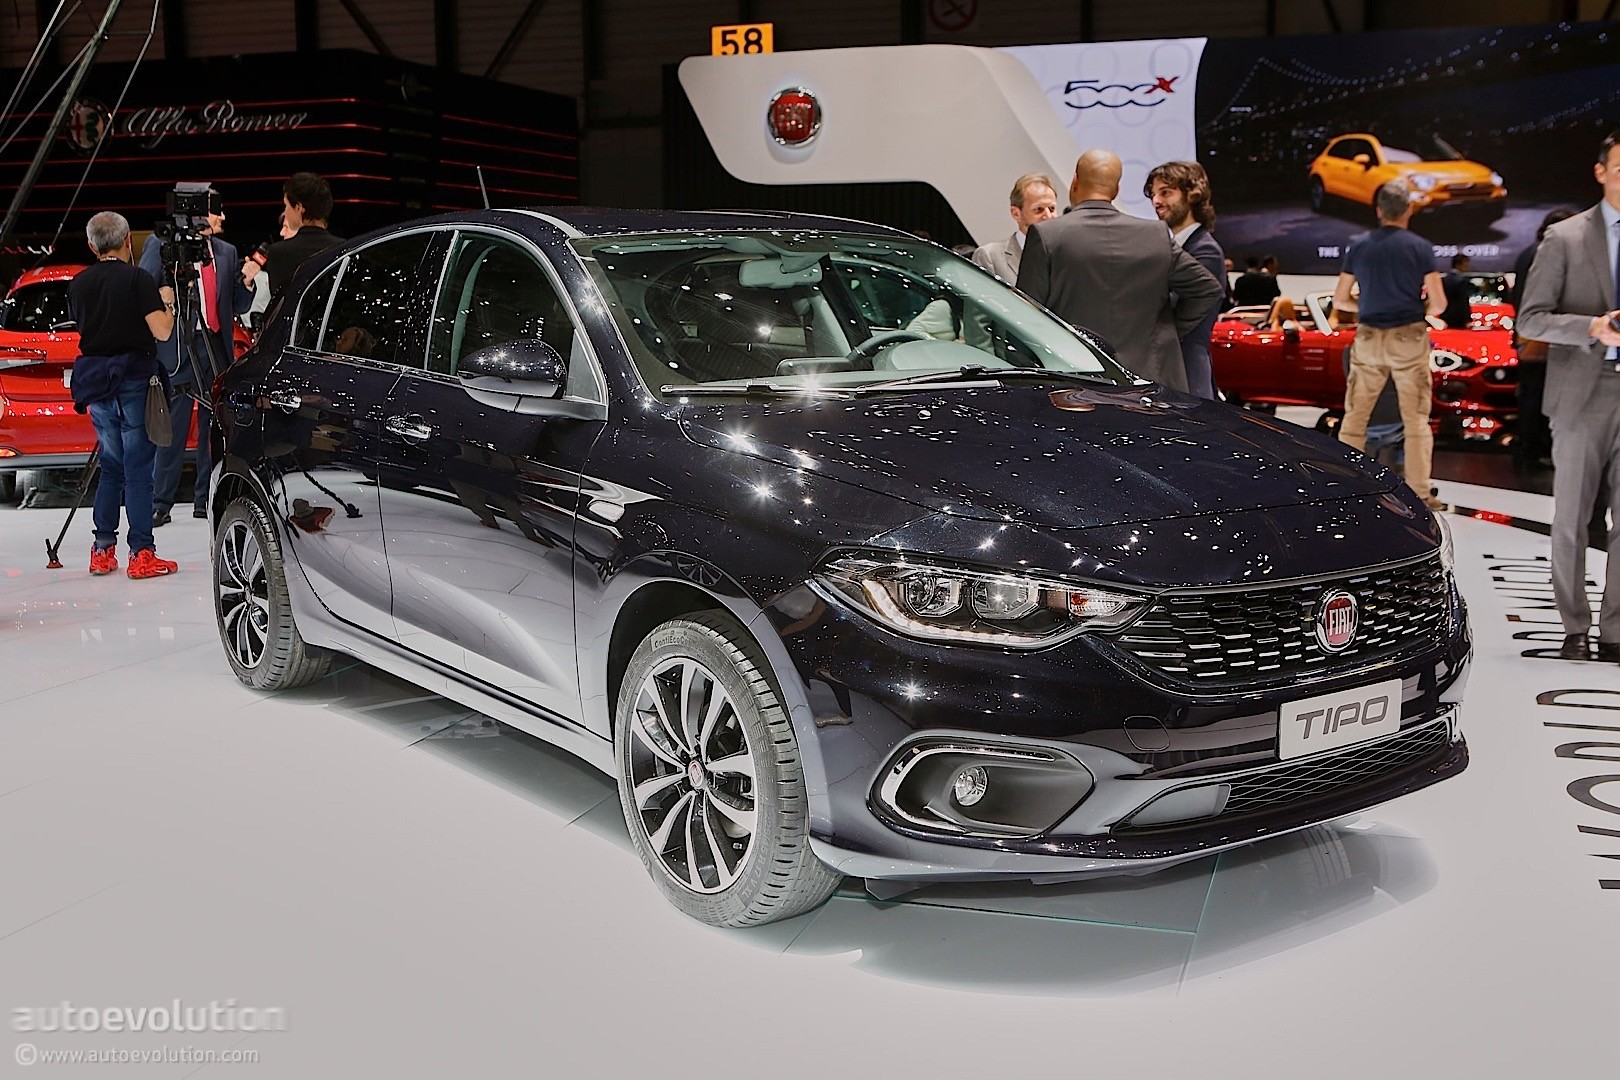 Fiat Tipo Comes In Hatchback And Estate Flavors At The Geneva Motor Show